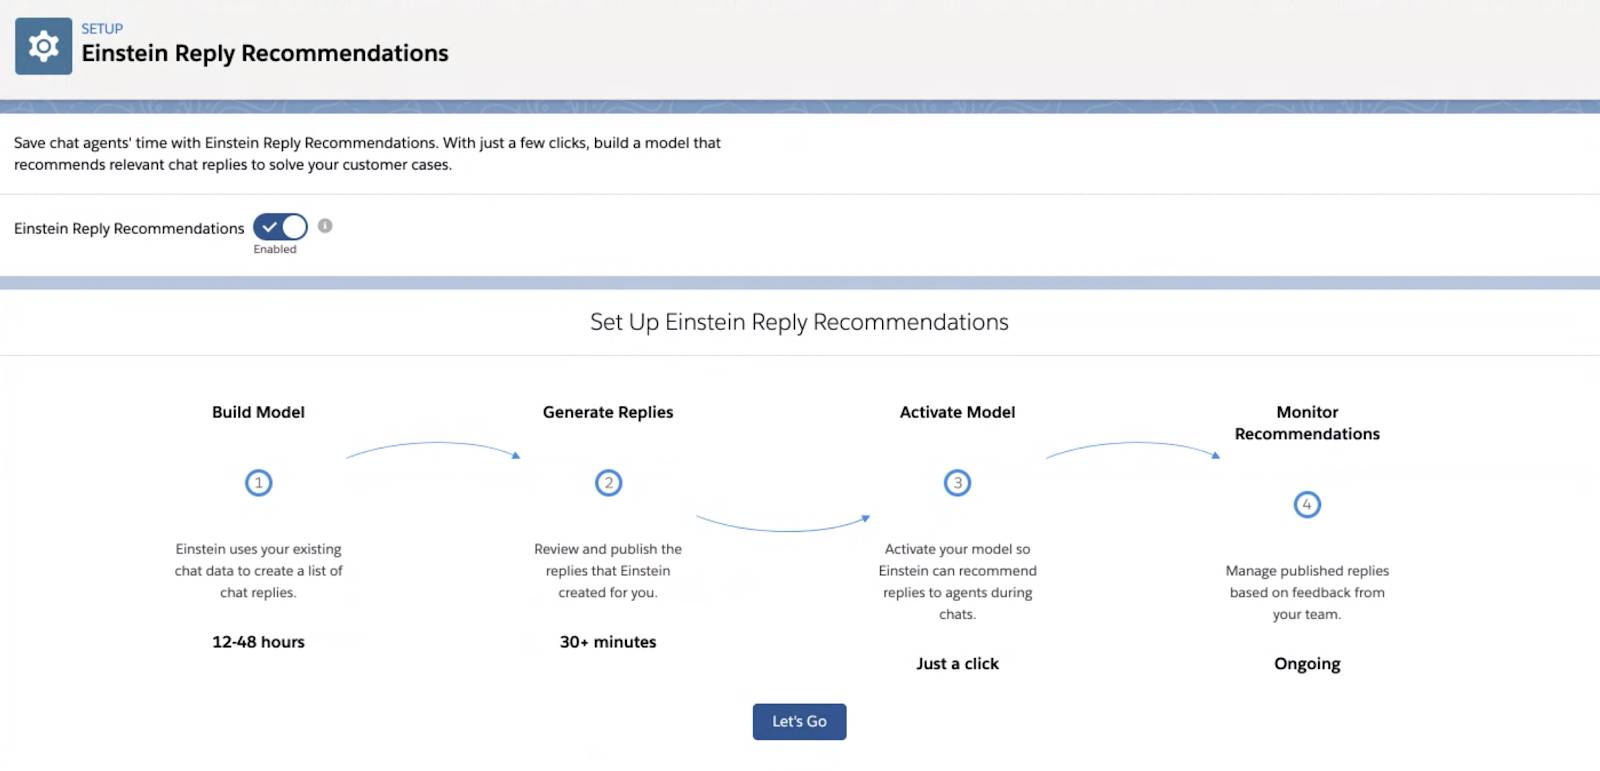 Einstein Reply Recommendations set up flow chart: build model, generate replies, activate model, and monitor recommendations.